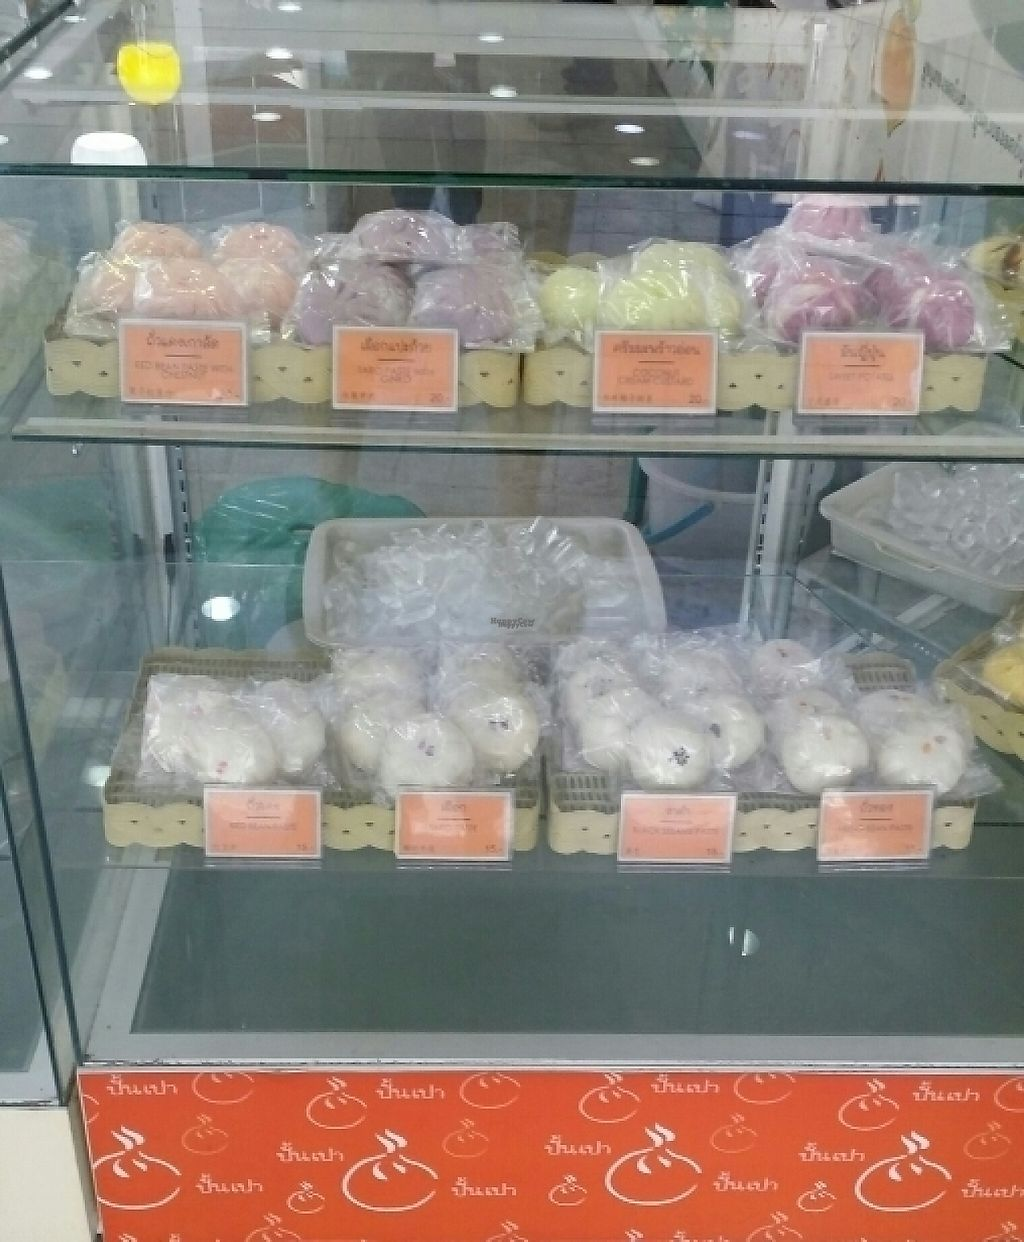 """Photo of Pun-Pao Steamed Buns  by <a href=""""/members/profile/Mike%20Munsie"""">Mike Munsie</a> <br/>vegan steamed buns <br/> March 19, 2017  - <a href='/contact/abuse/image/35214/238192'>Report</a>"""